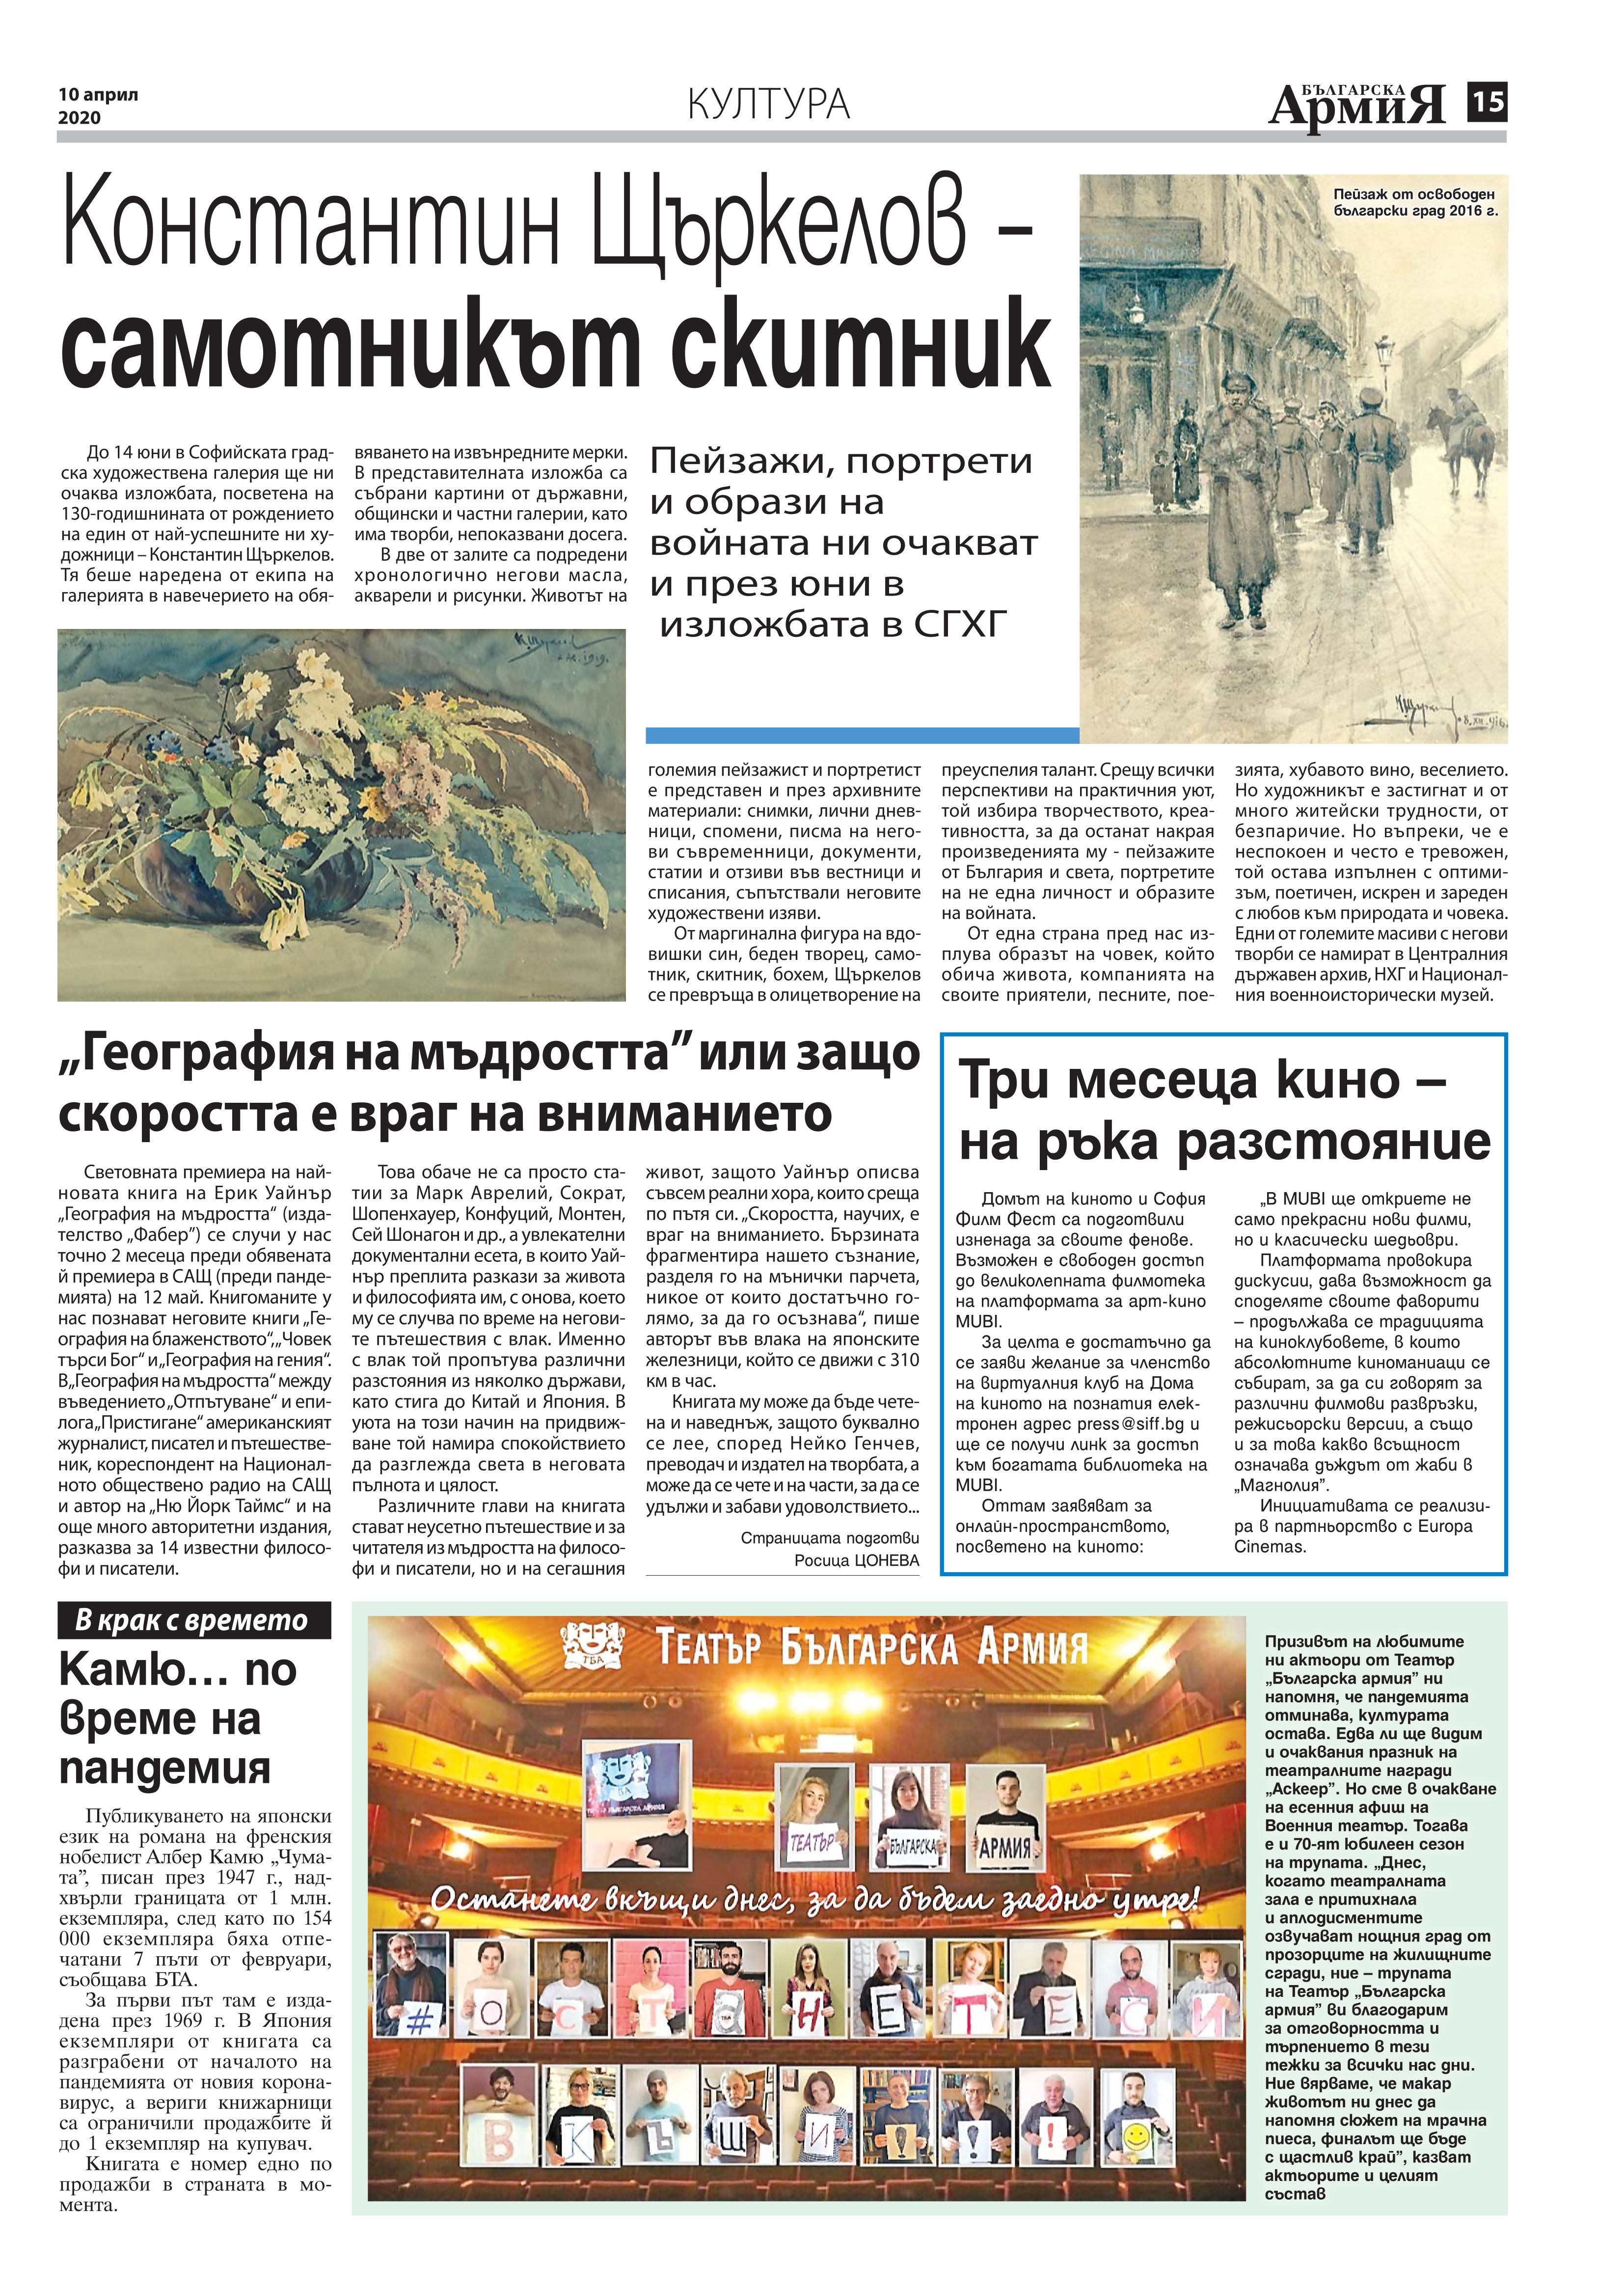 https://www.armymedia.bg/wp-content/uploads/2015/06/15.page1_-134.jpg